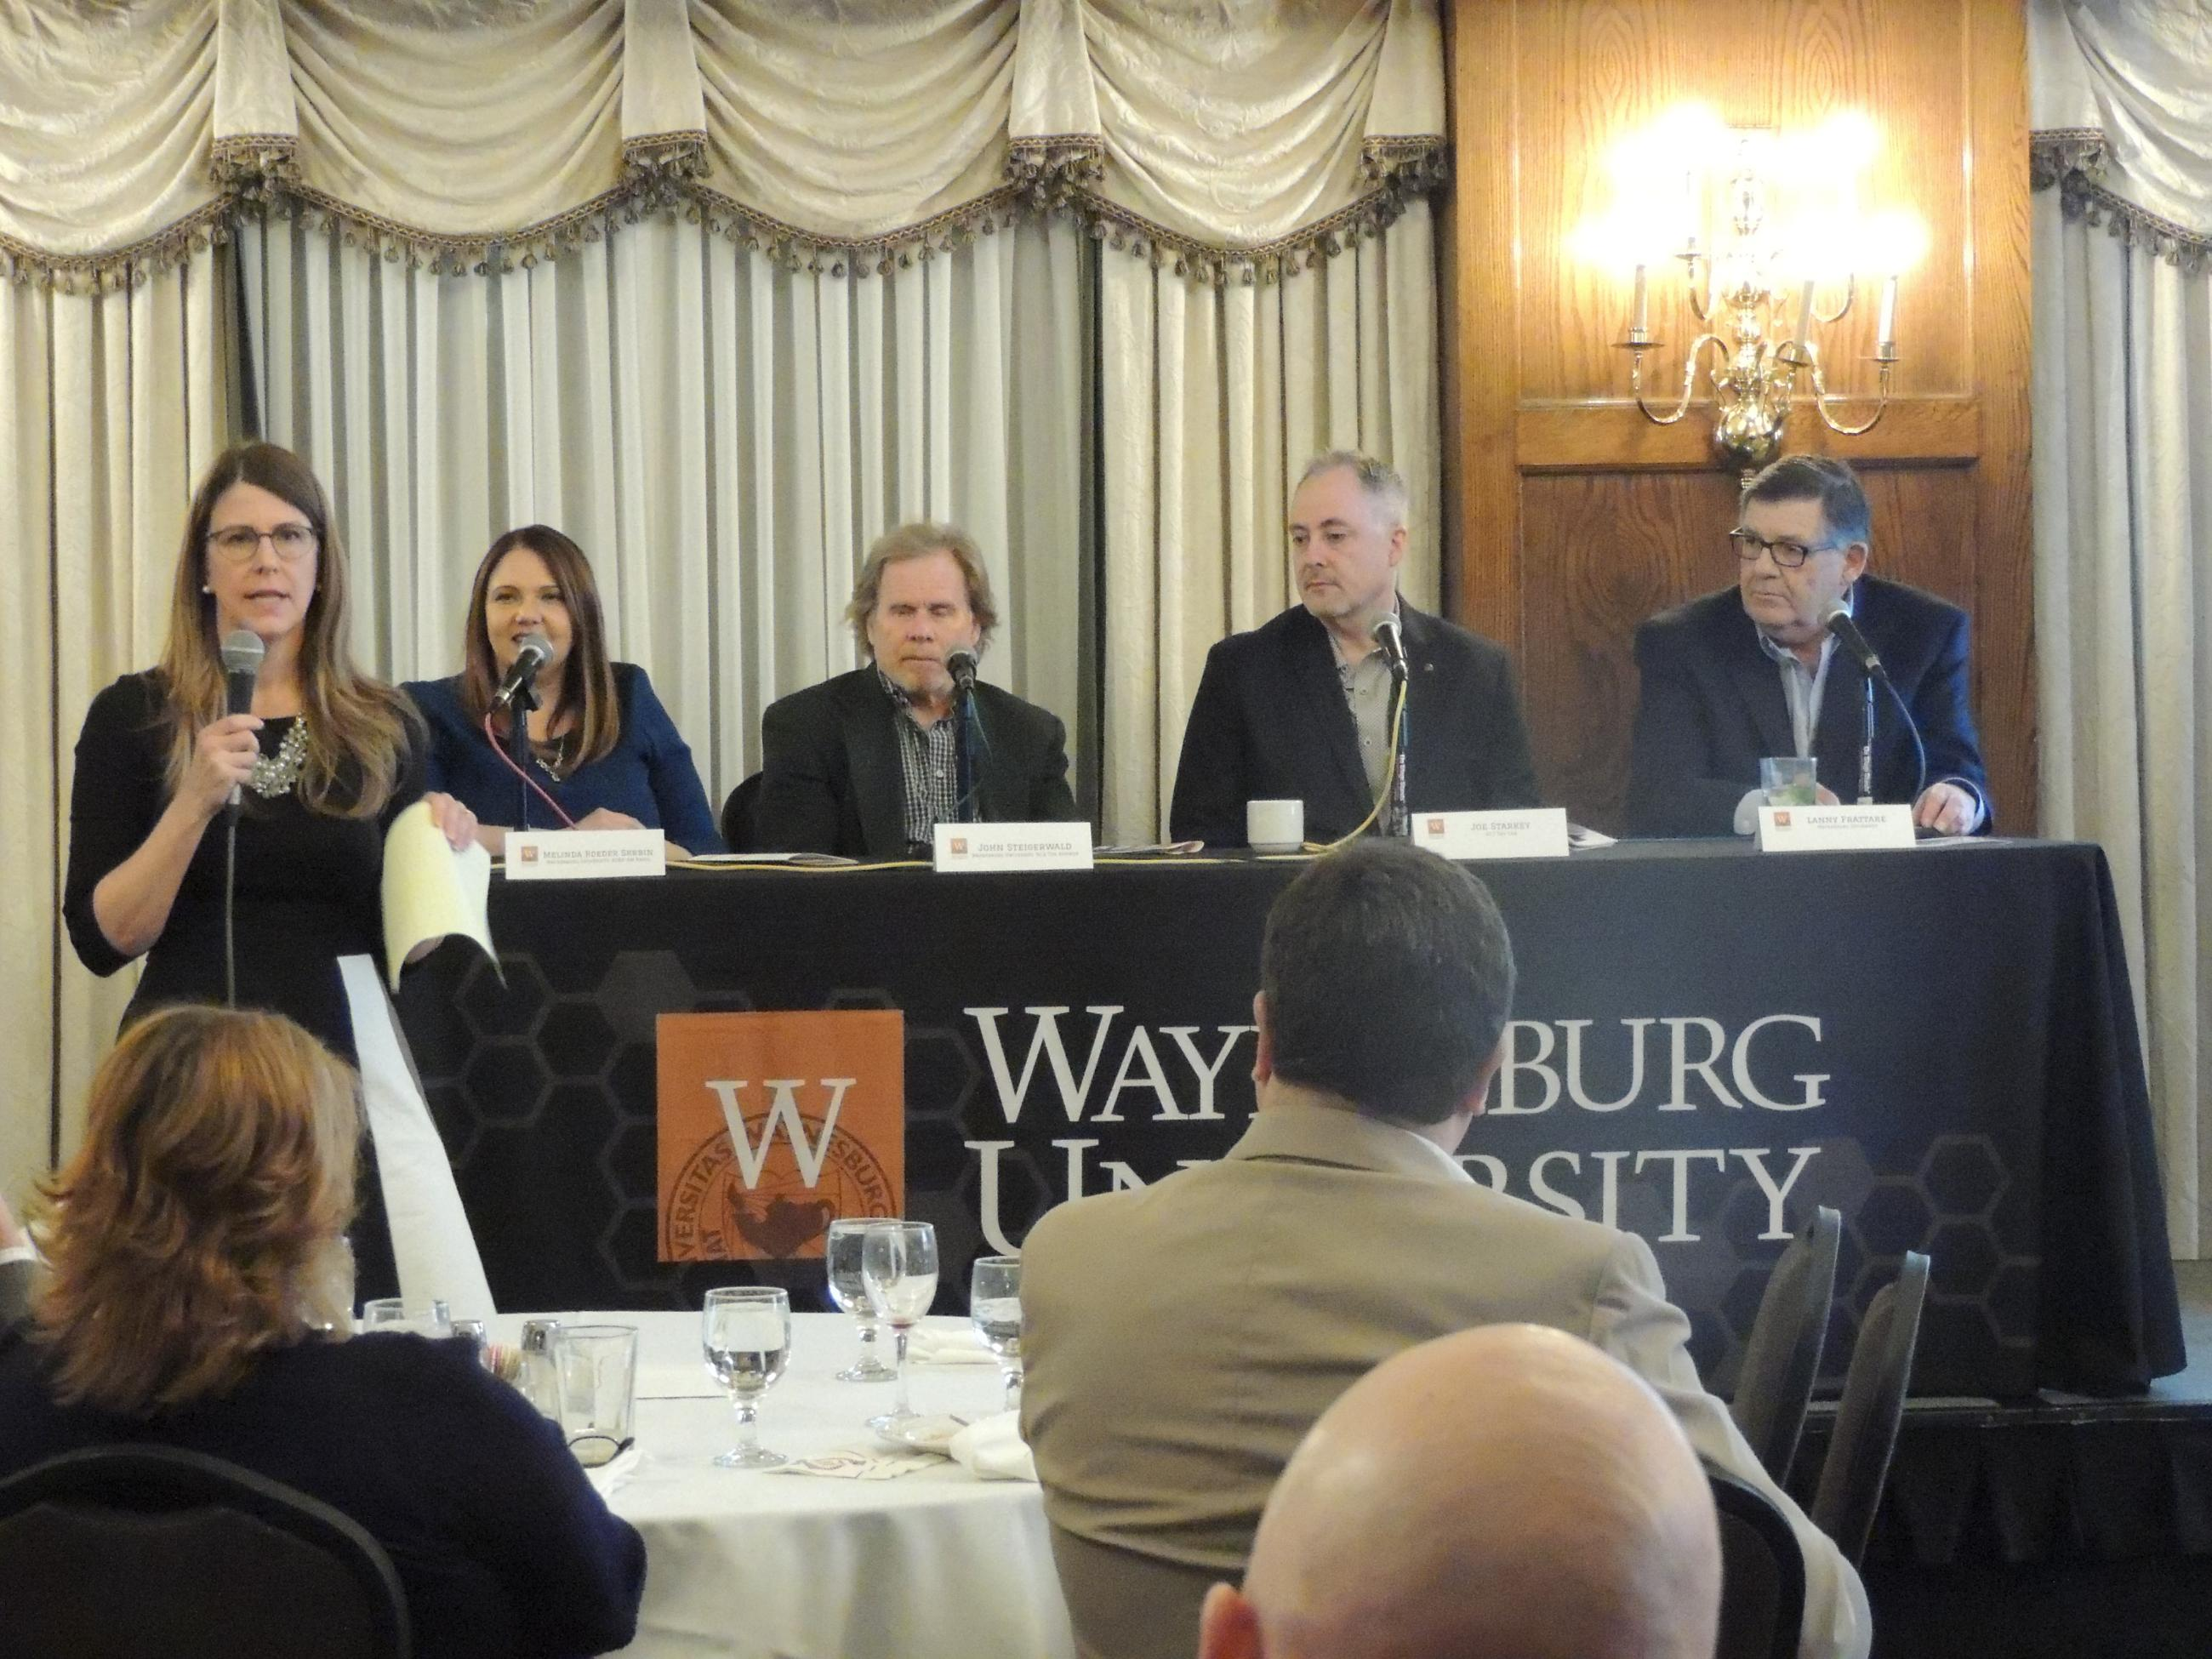 Stacey Brodak VP of Institutional Advancement, Melinda Roeder Skrbin, John Steigerwald, Joe Starkey, Lanny Frattare